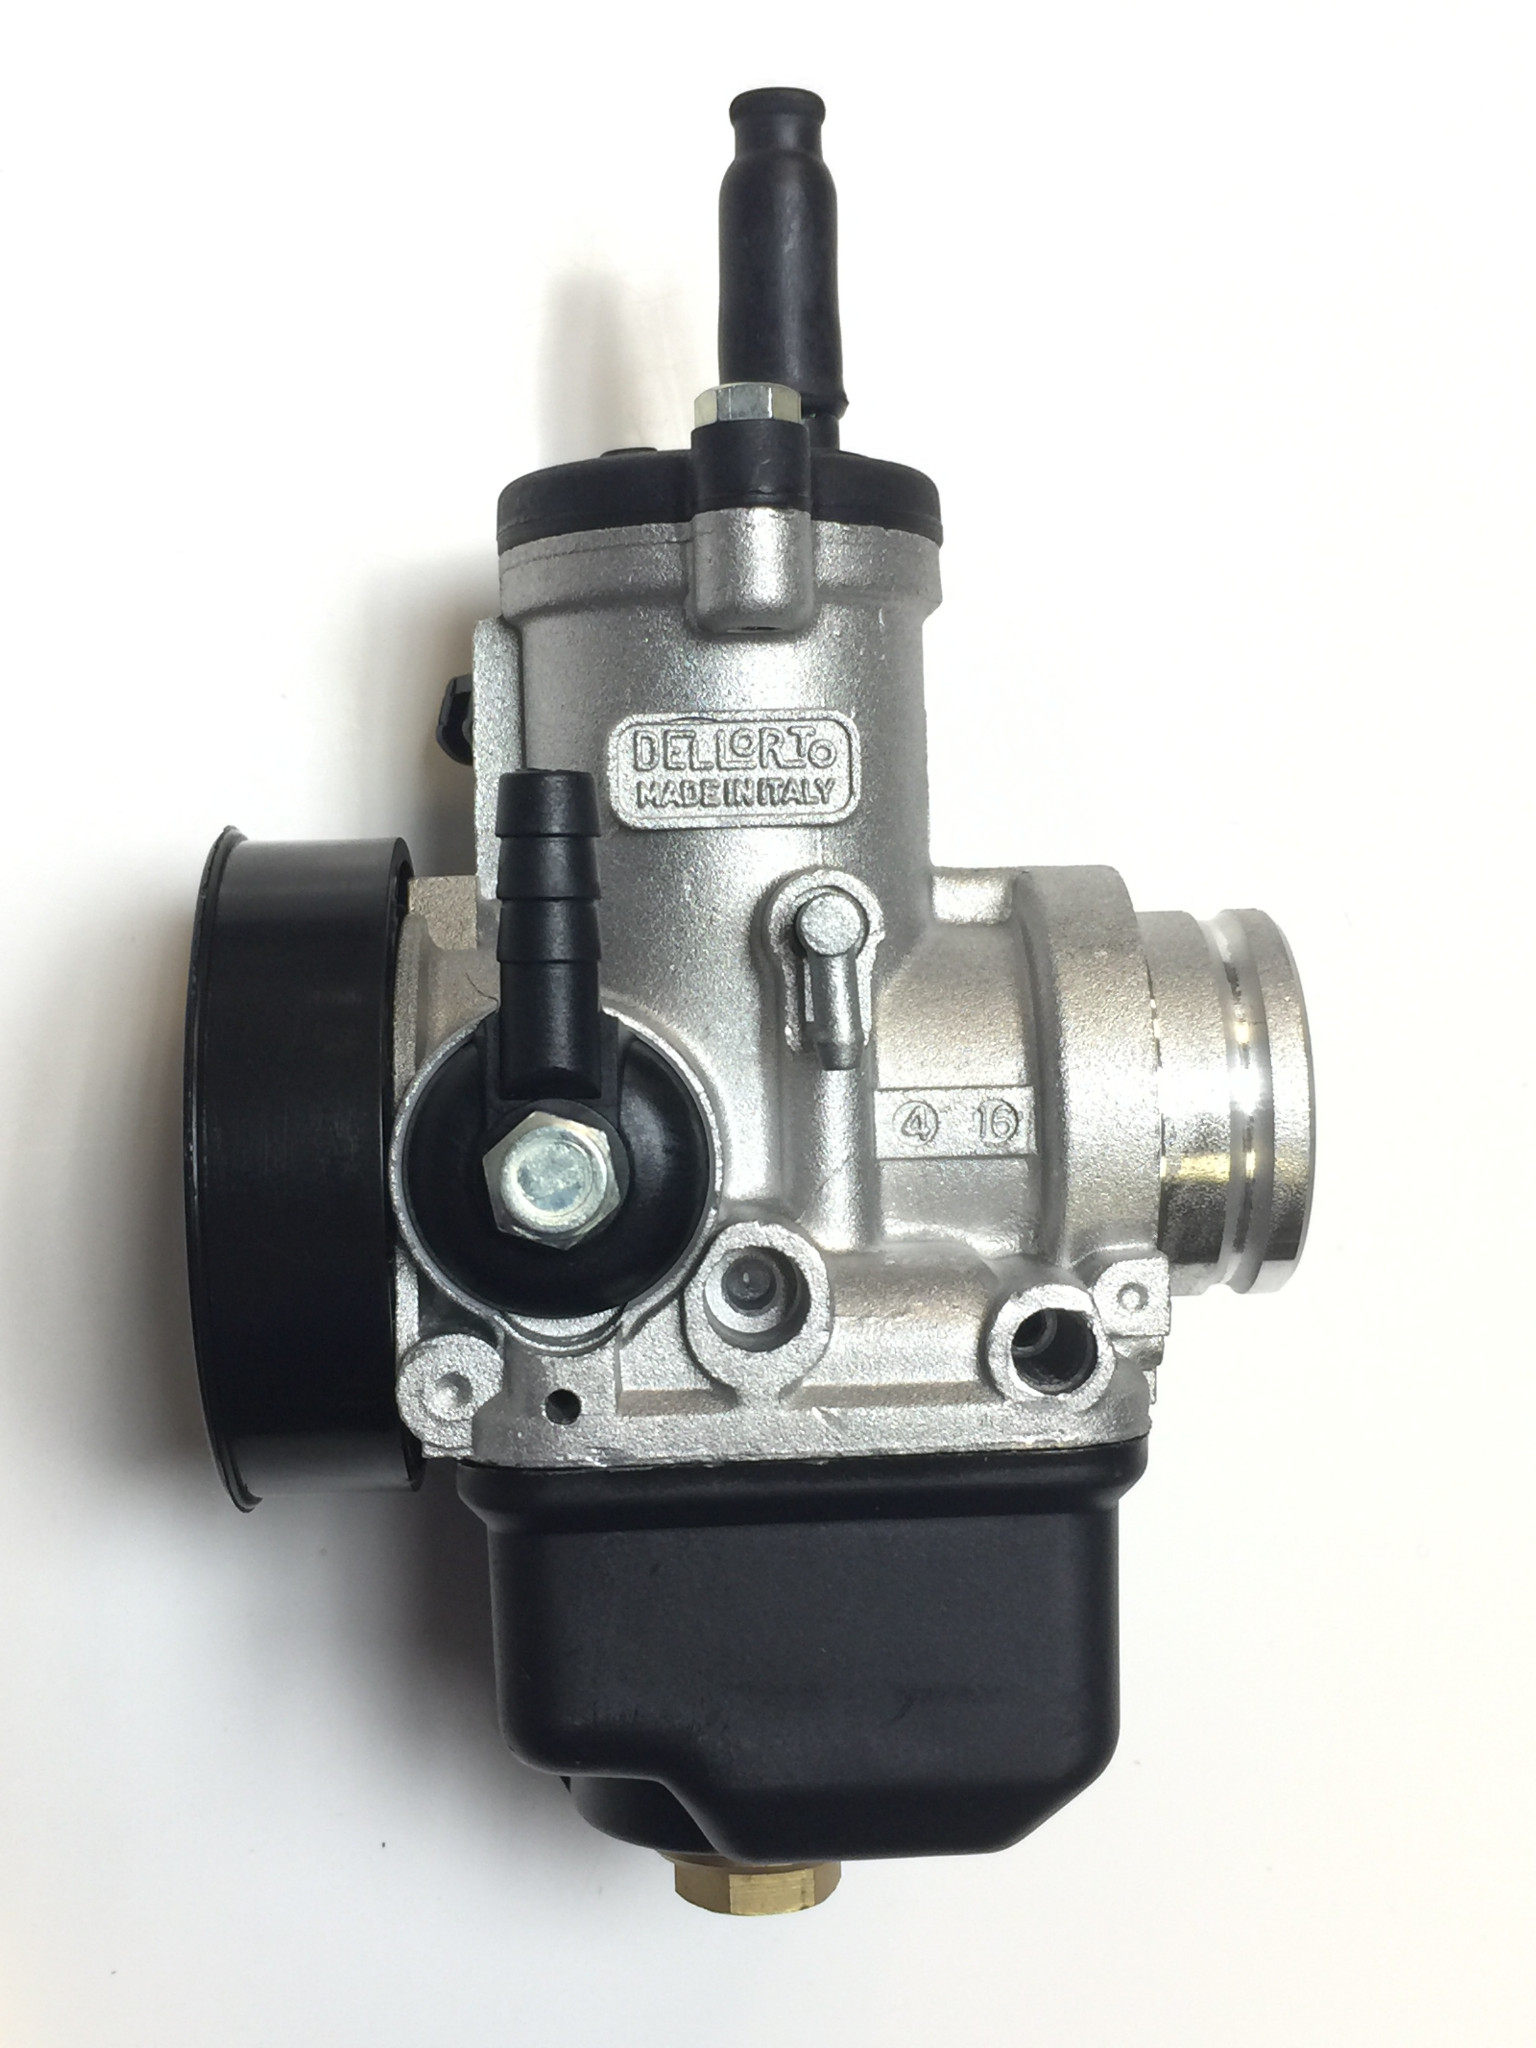 Dellorto 28mm PHBH carb with cable choke, no 3 float valve re jetted